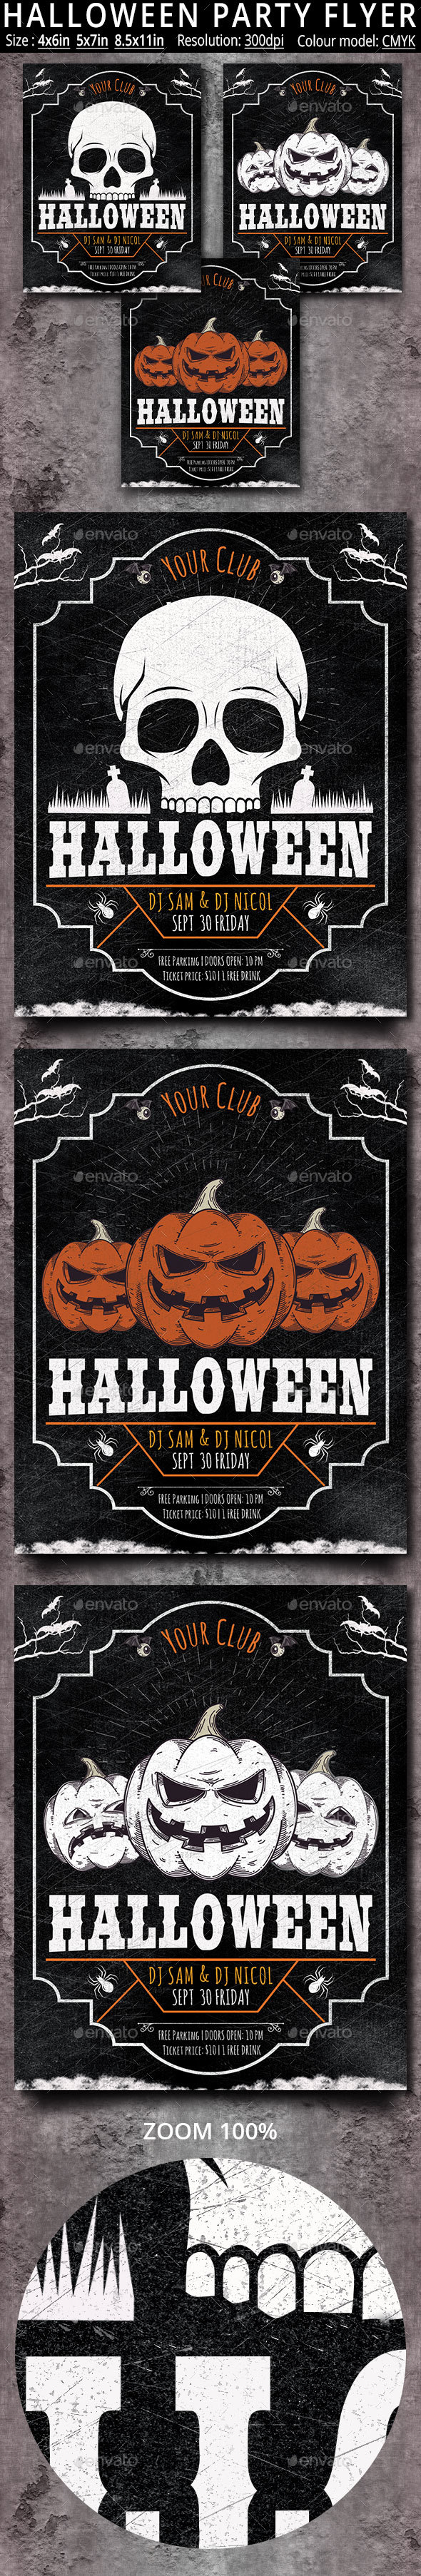 Halloween Party Flyer Poster - Holidays Events